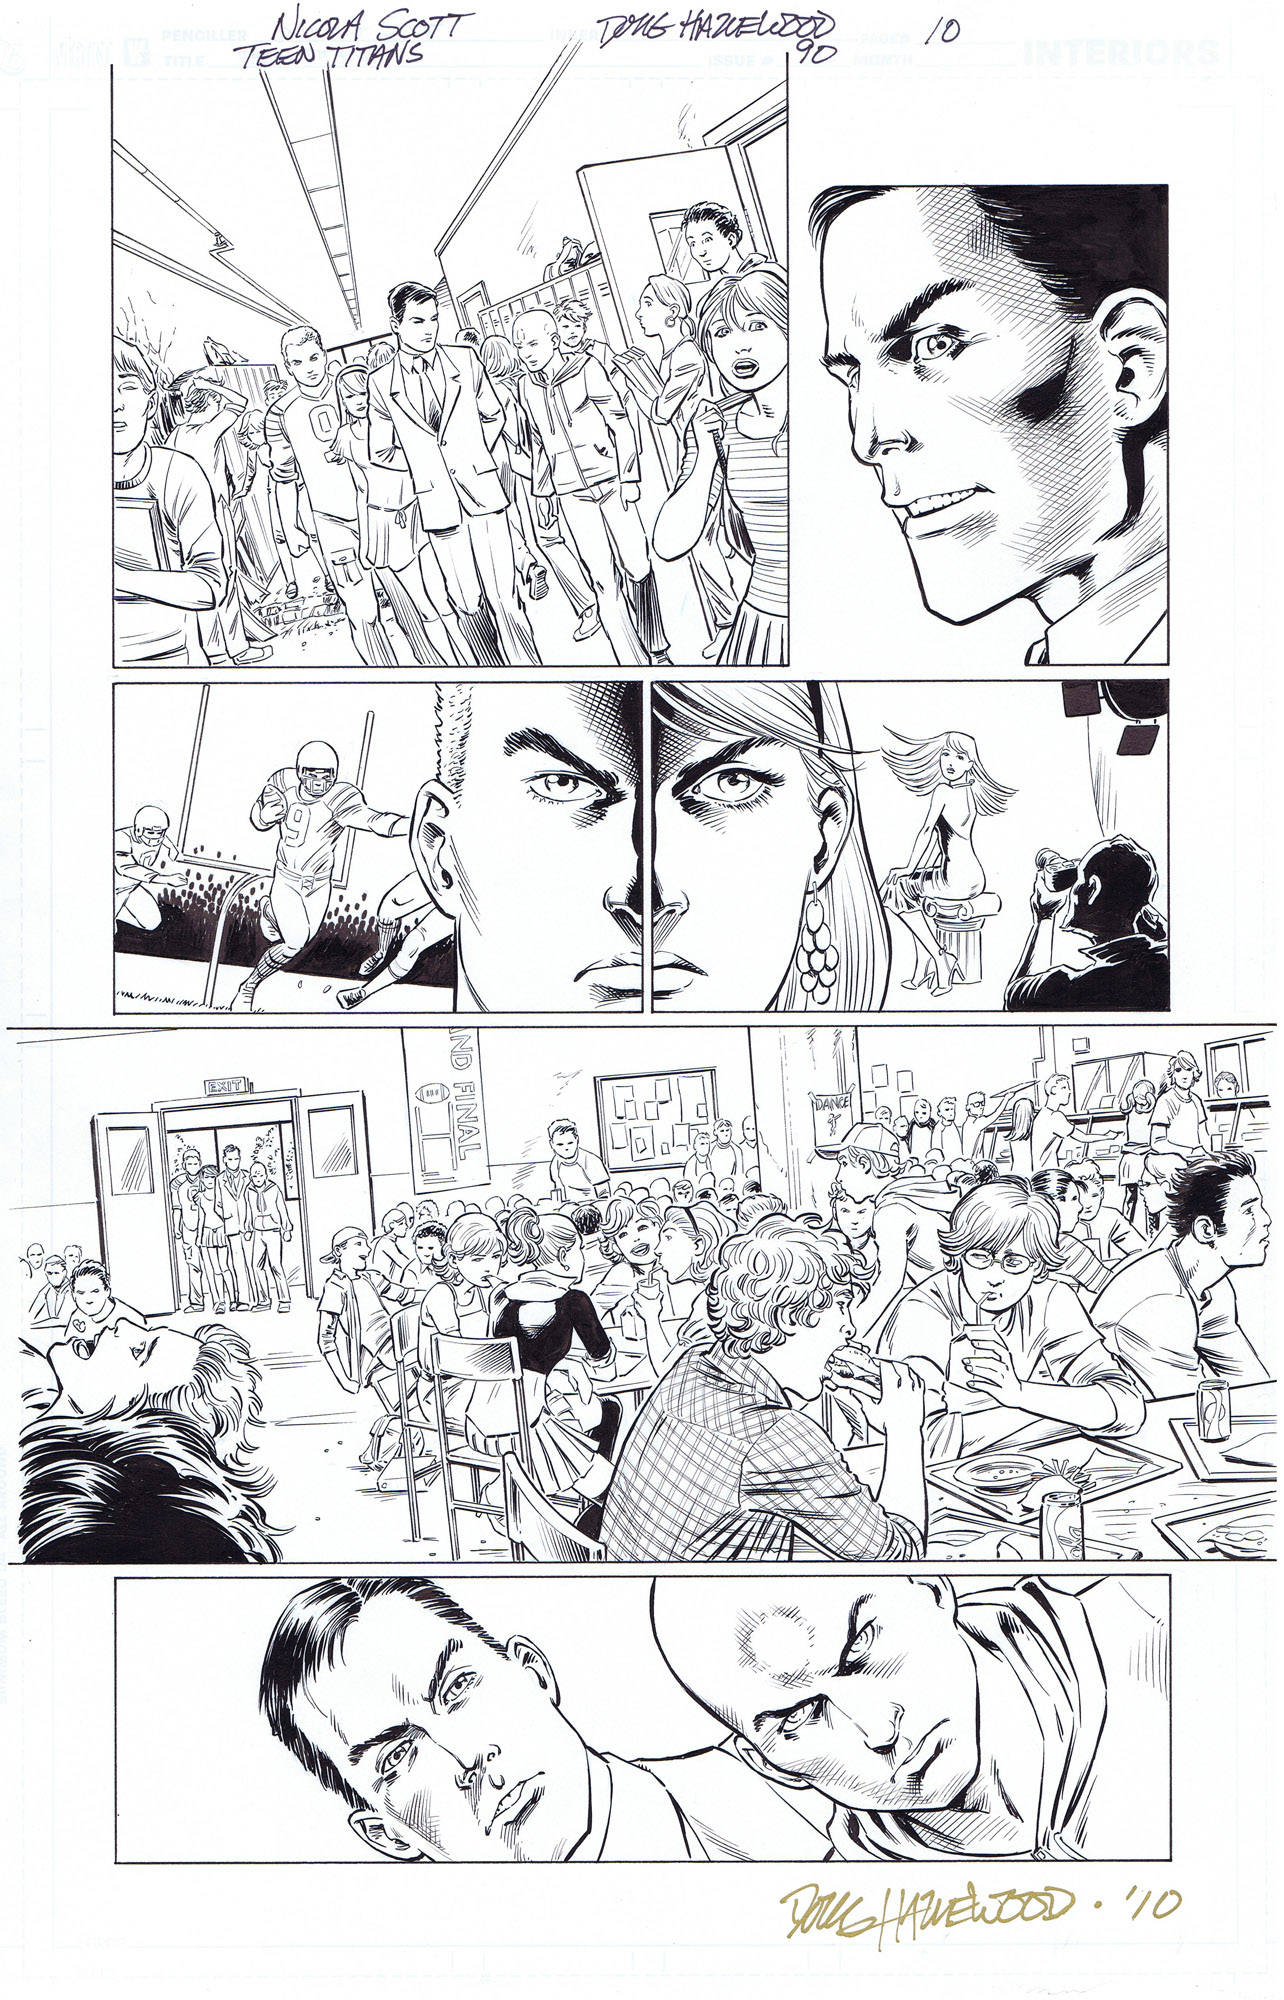 TEEN TITANS #90 Pg 10 Not Your Average School $25 by DRHazlewood